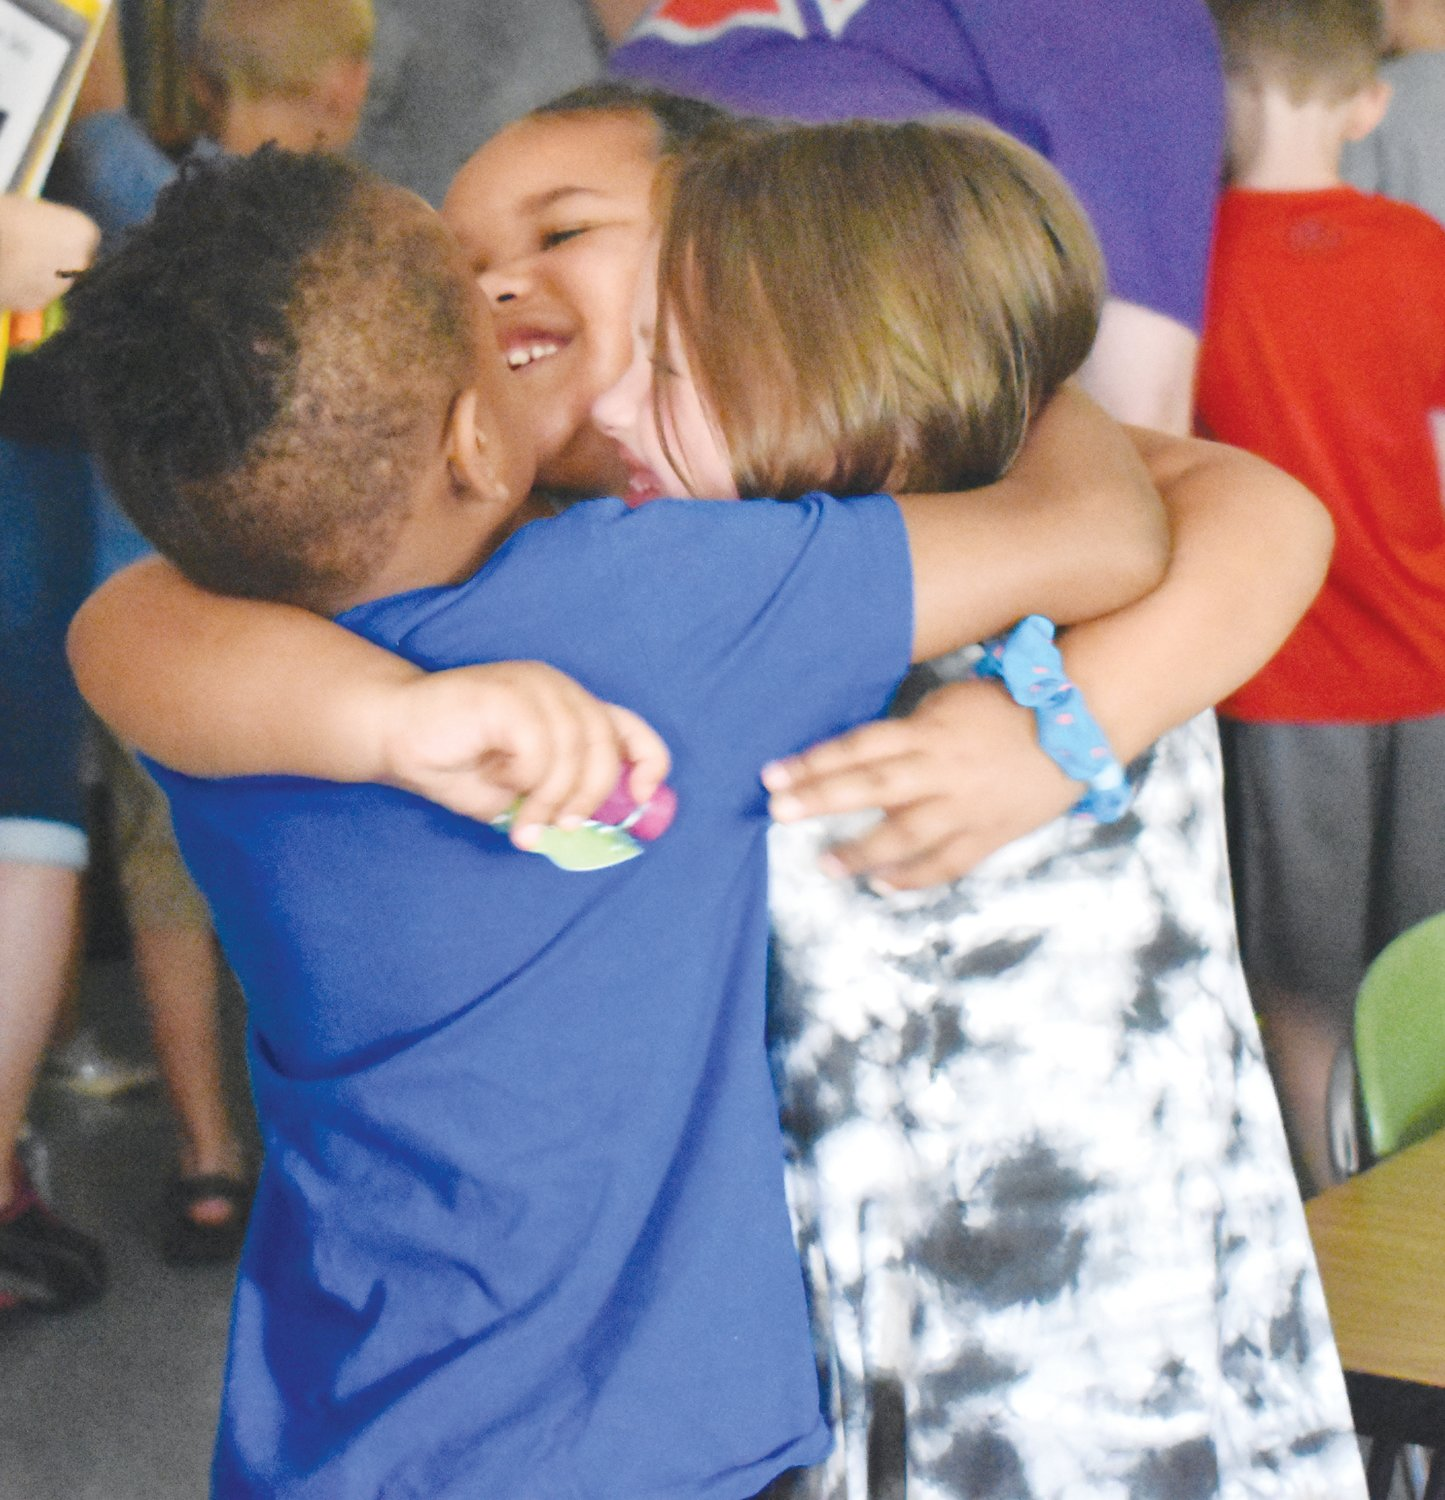 Bethel Hill Charter School students, from left, Gabriel Stokes, Juliann Torian and Khloe Tingen-Hicks share a hug after learning what first grade will be like.